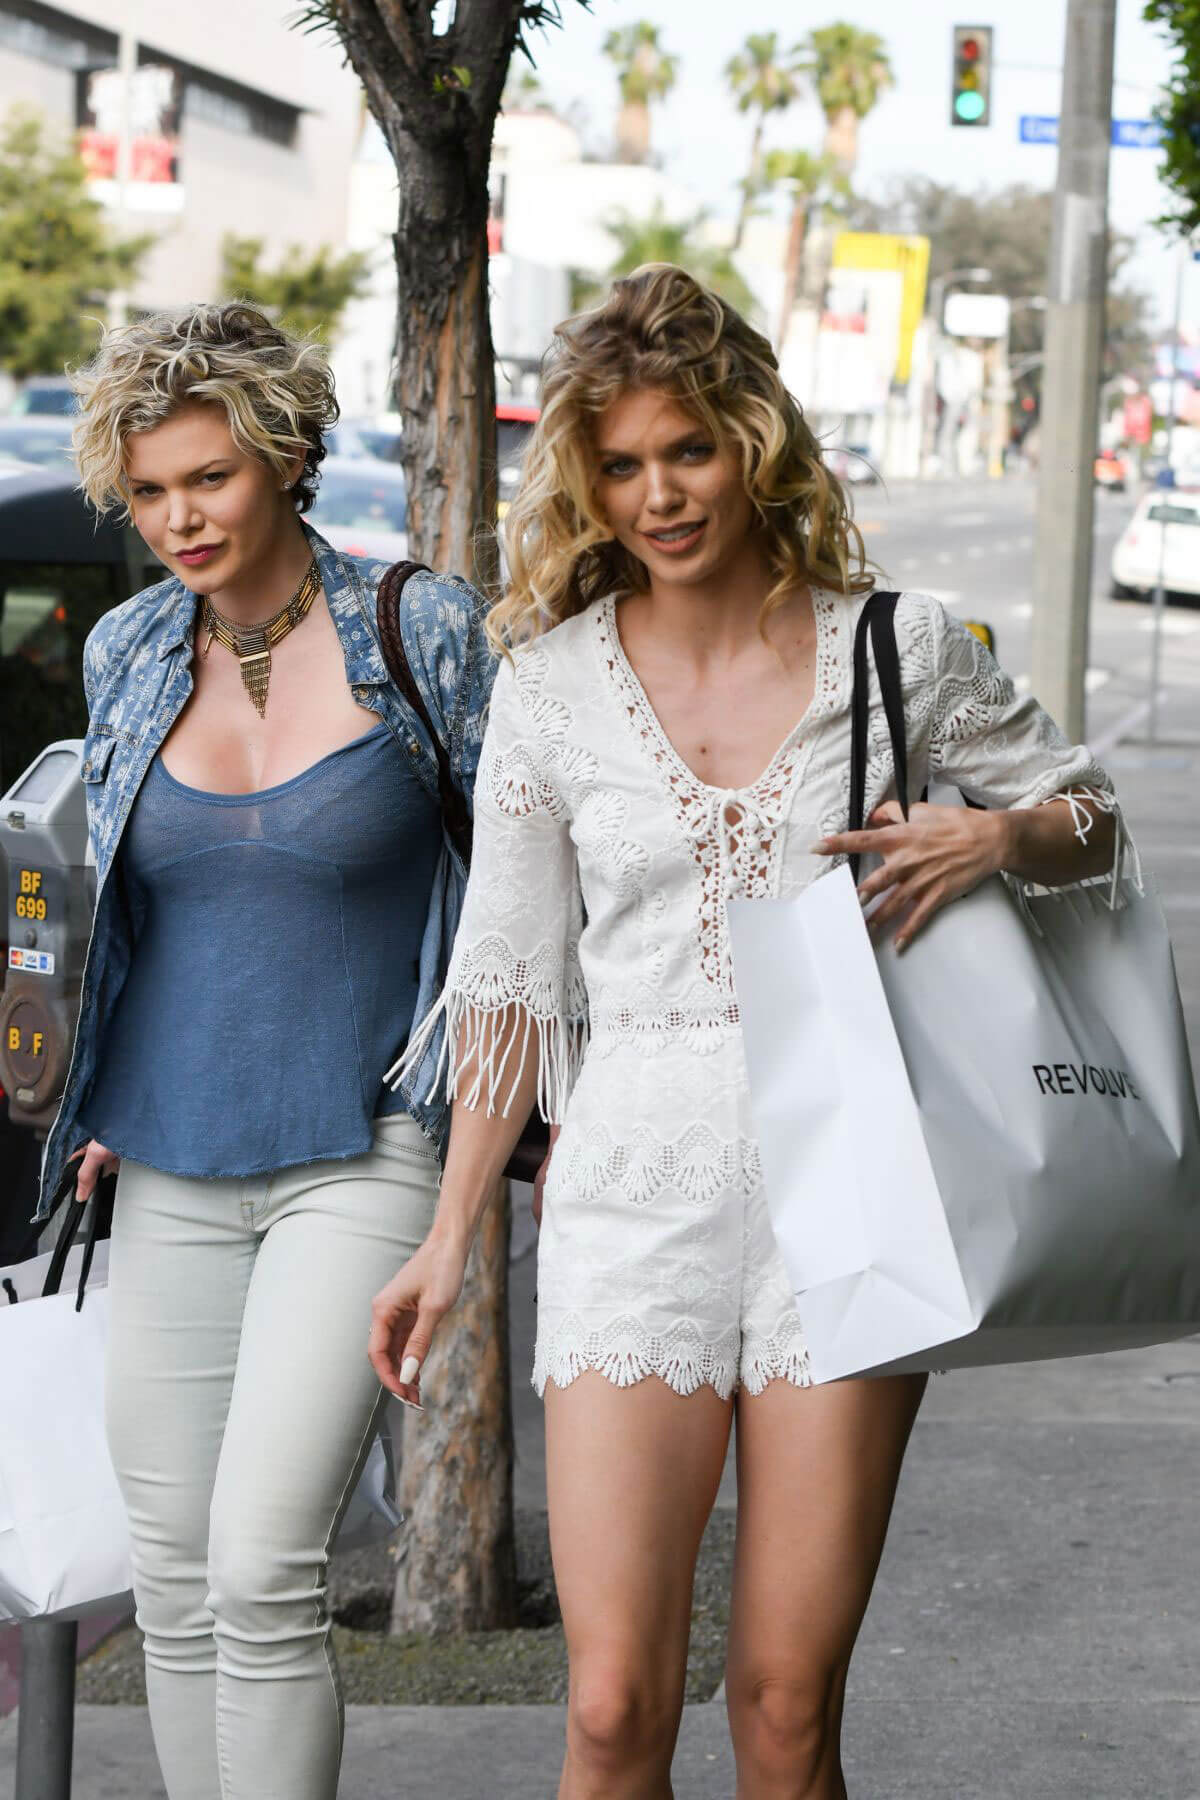 AnnaLynne McCord and Angel McCord Stills Leaves Revolve Social Club in Los Angeles